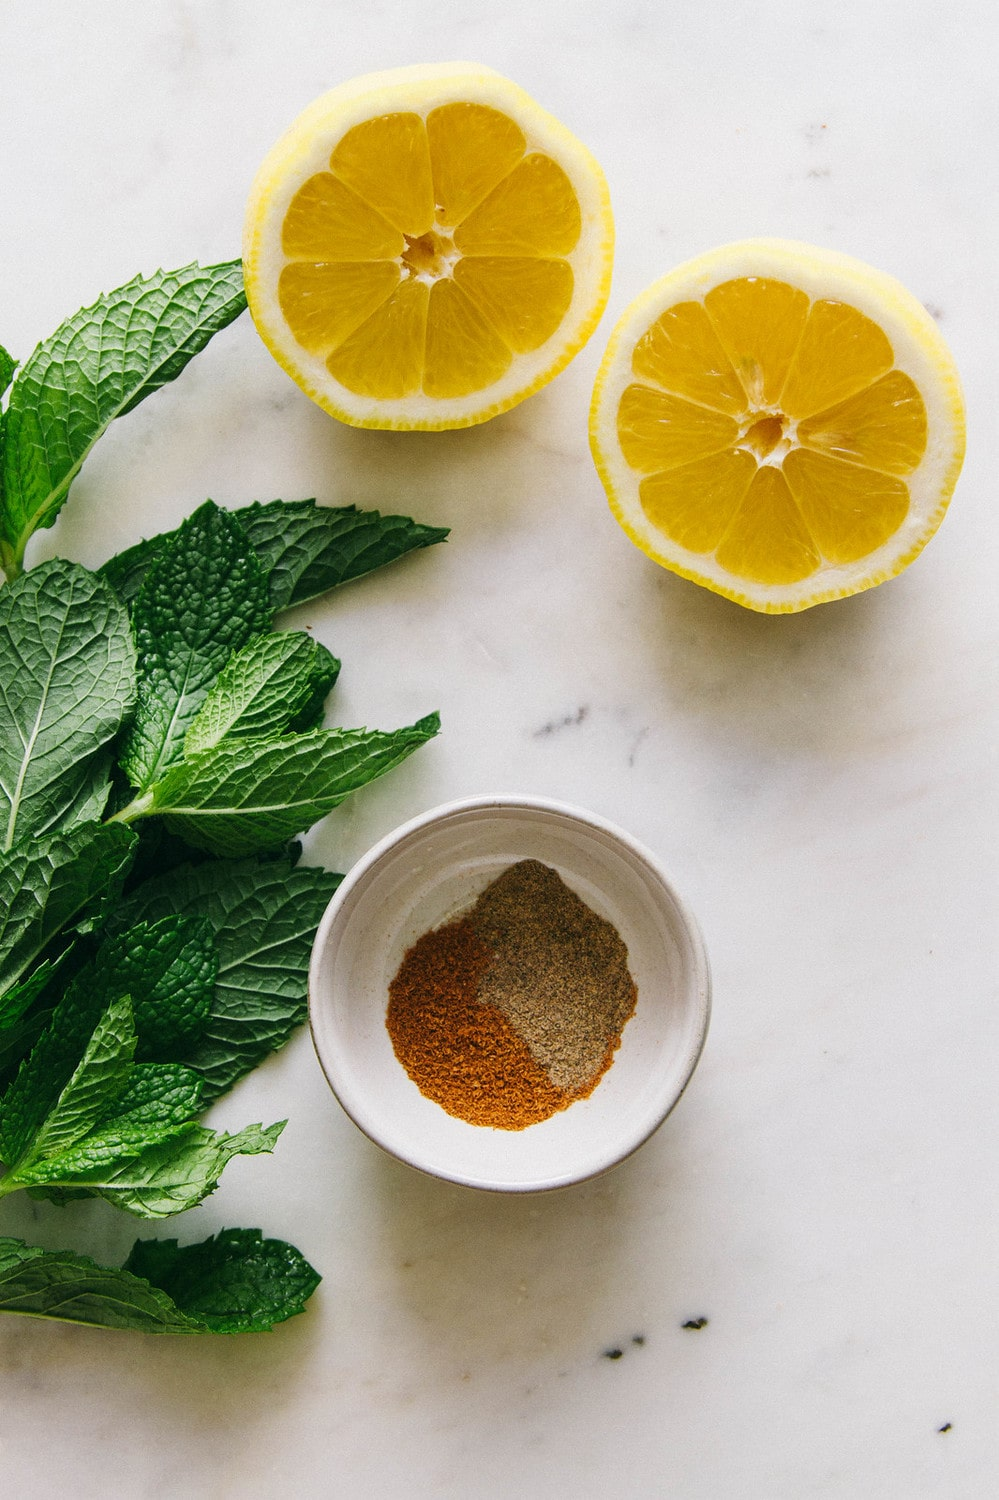 fresh mint, lemon and spices on a marble countertop